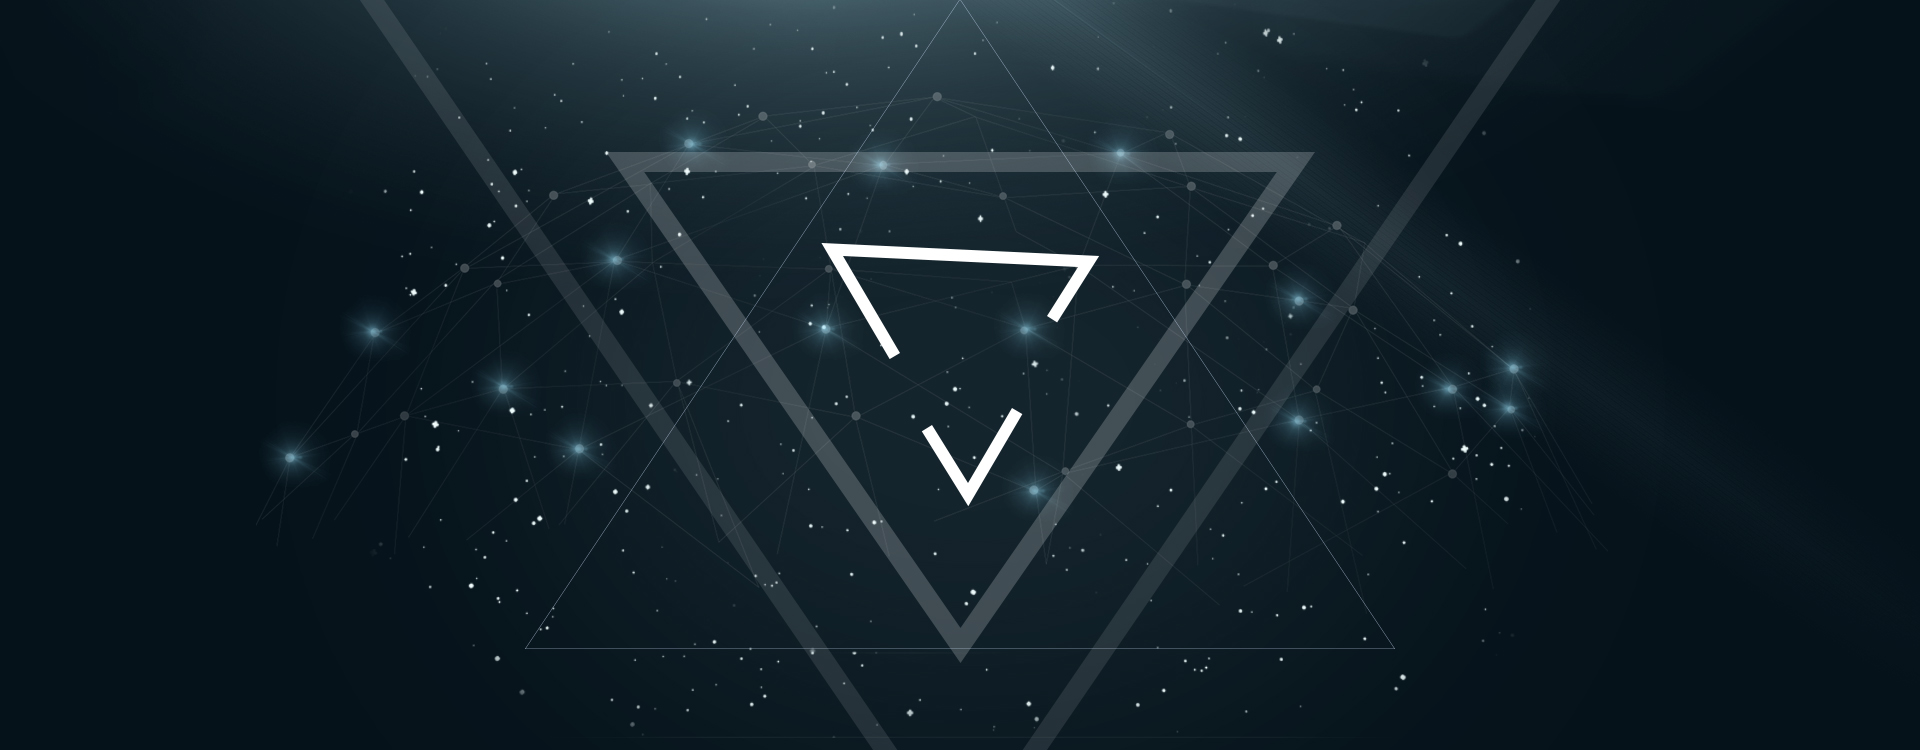 astral geometry background  triangle  poster banner  flat